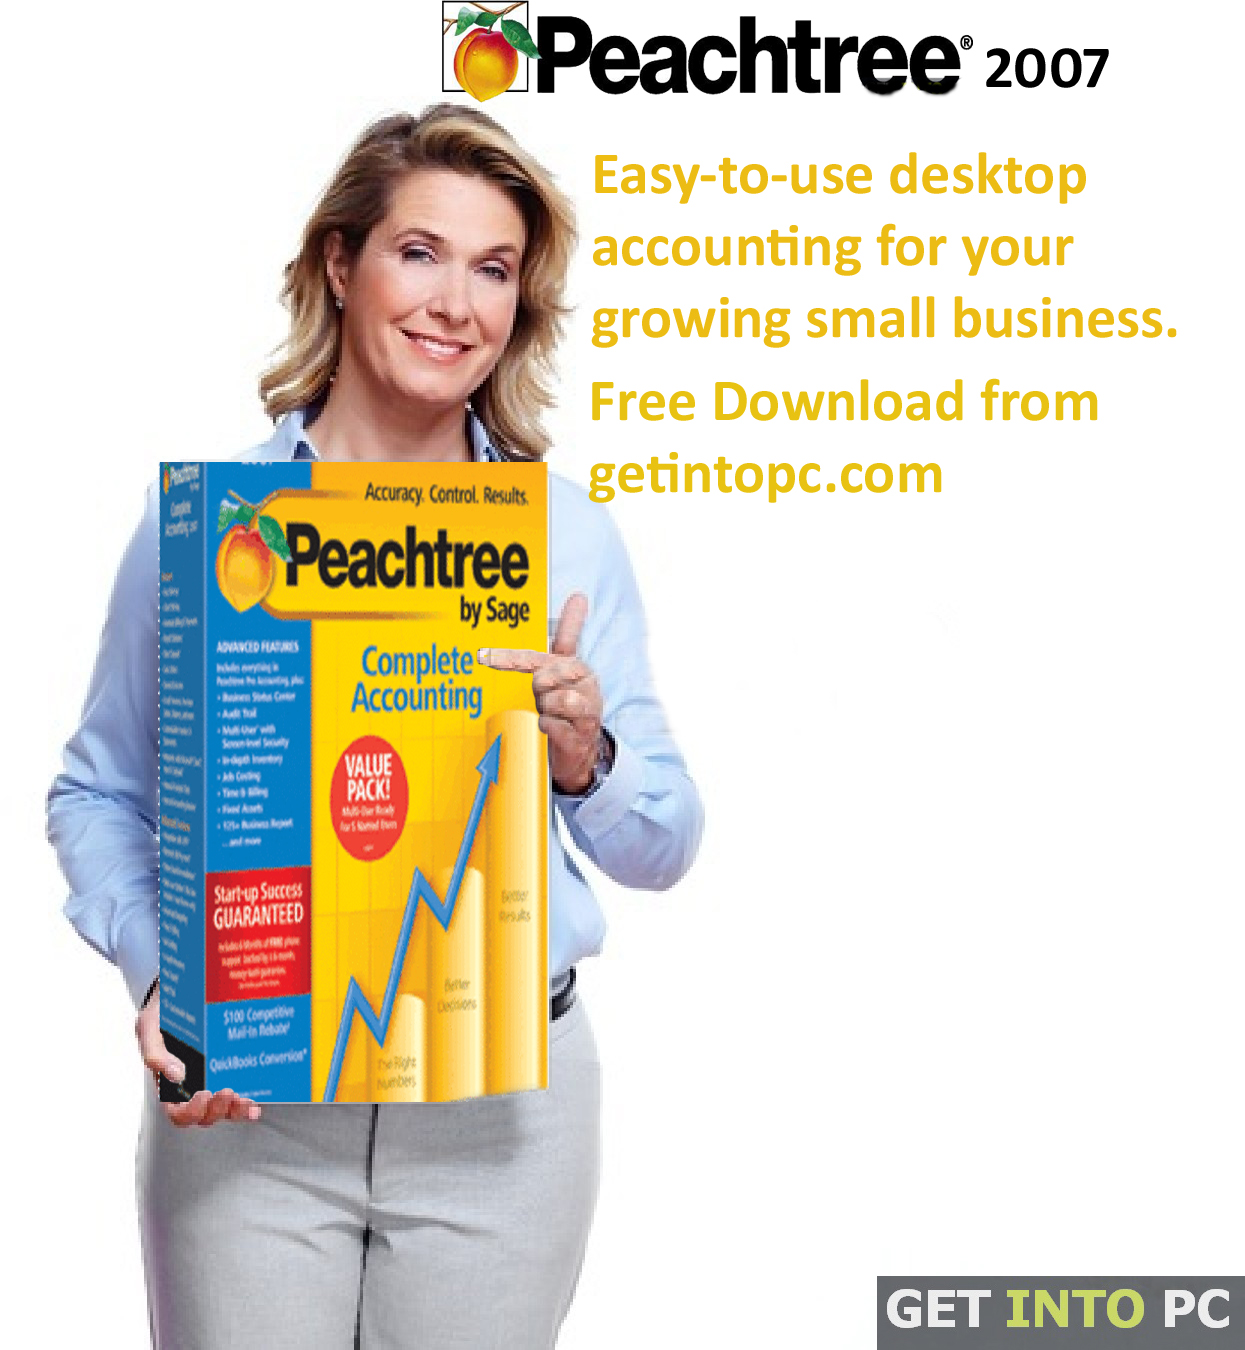 Peachtree 2007 Free Download